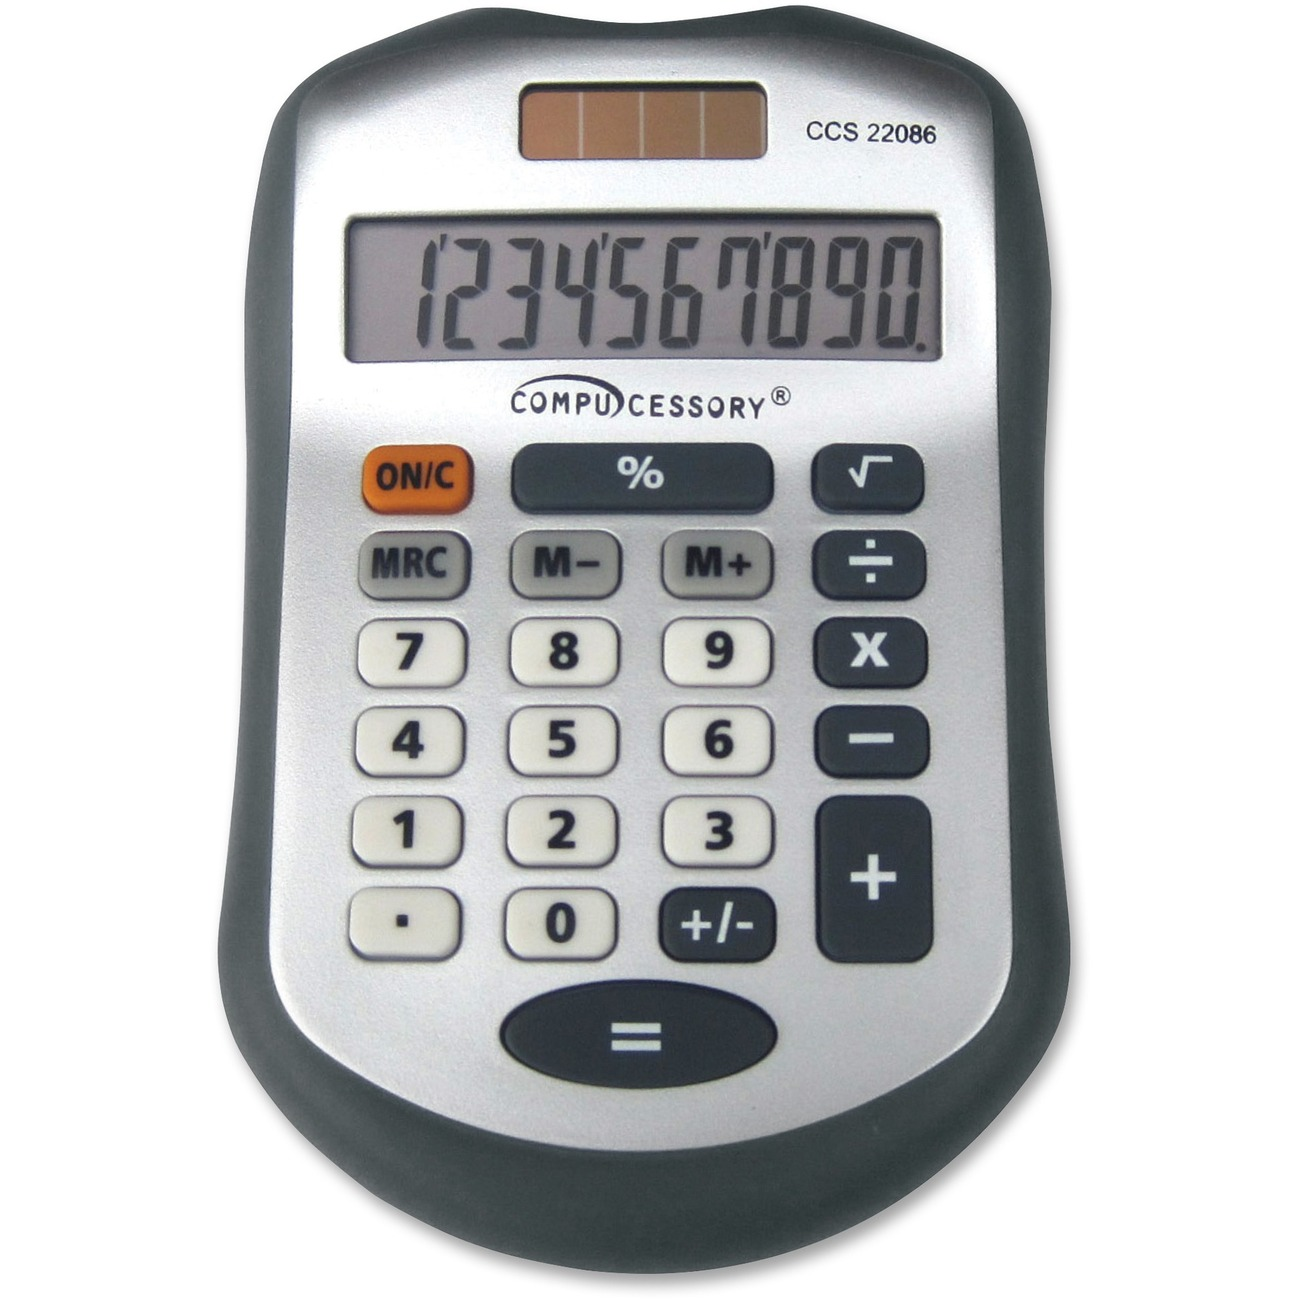 okanagan office systems technology office machines handheld calculator displays up to 10 digits soft rubber keys allow you to accurately punch the correct numbers four function memory is great for tedious